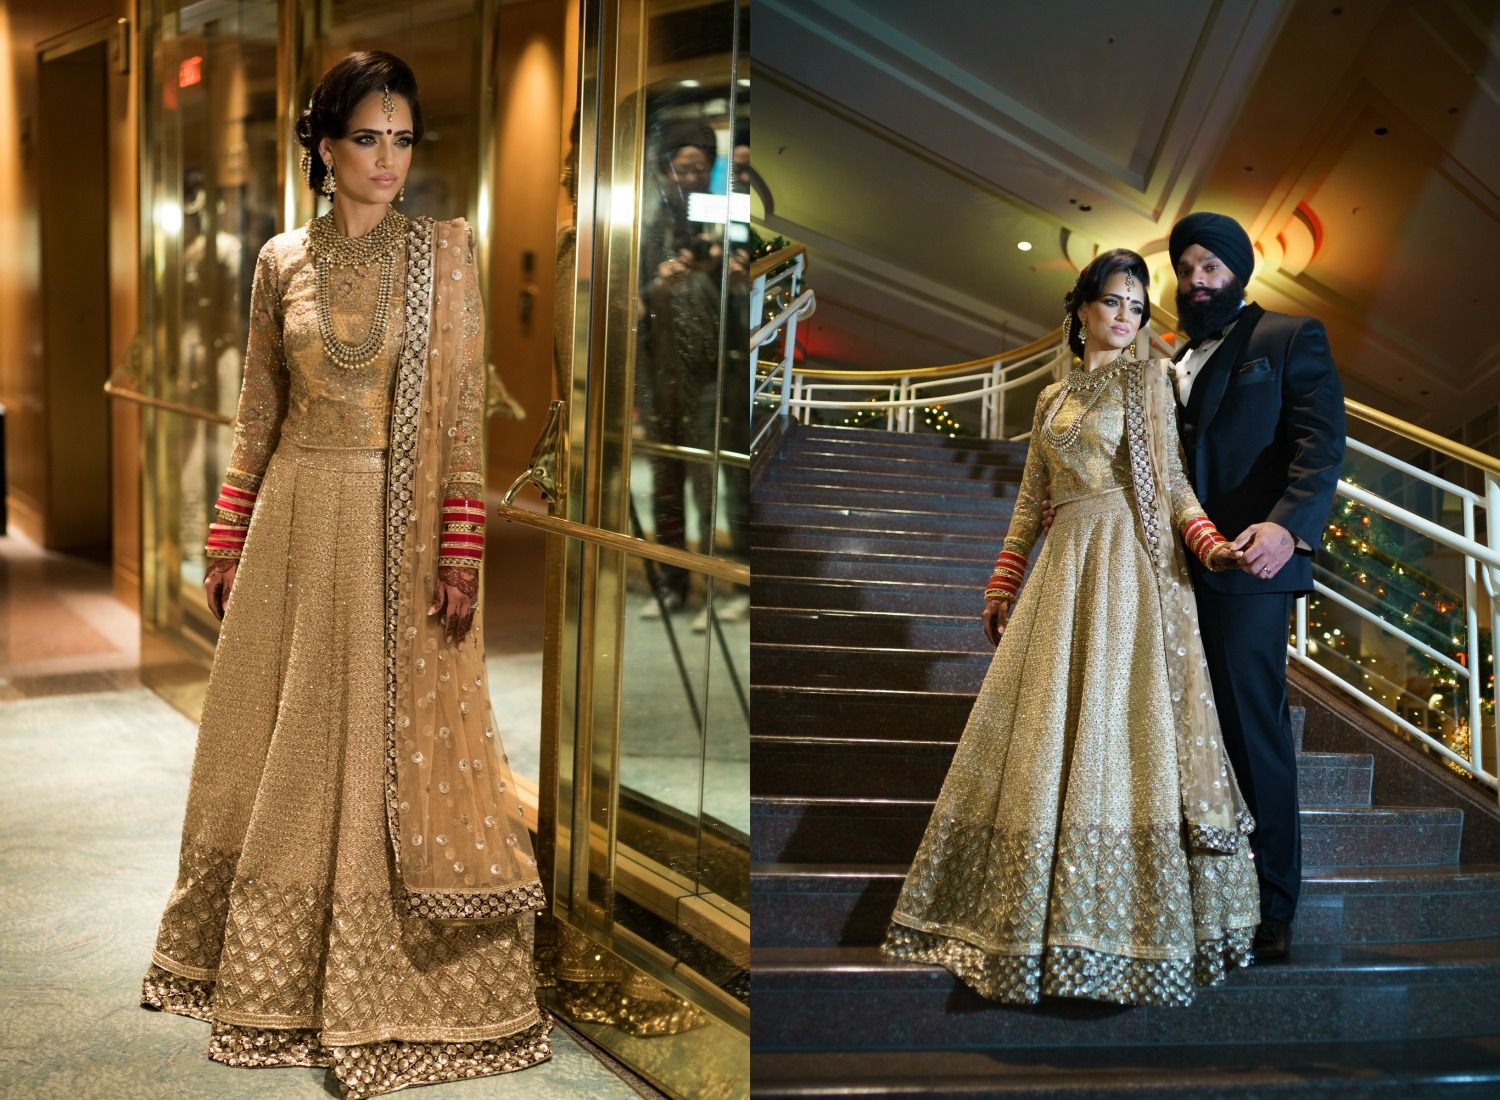 2019 year for women- Sikh a attending wedding what to wear